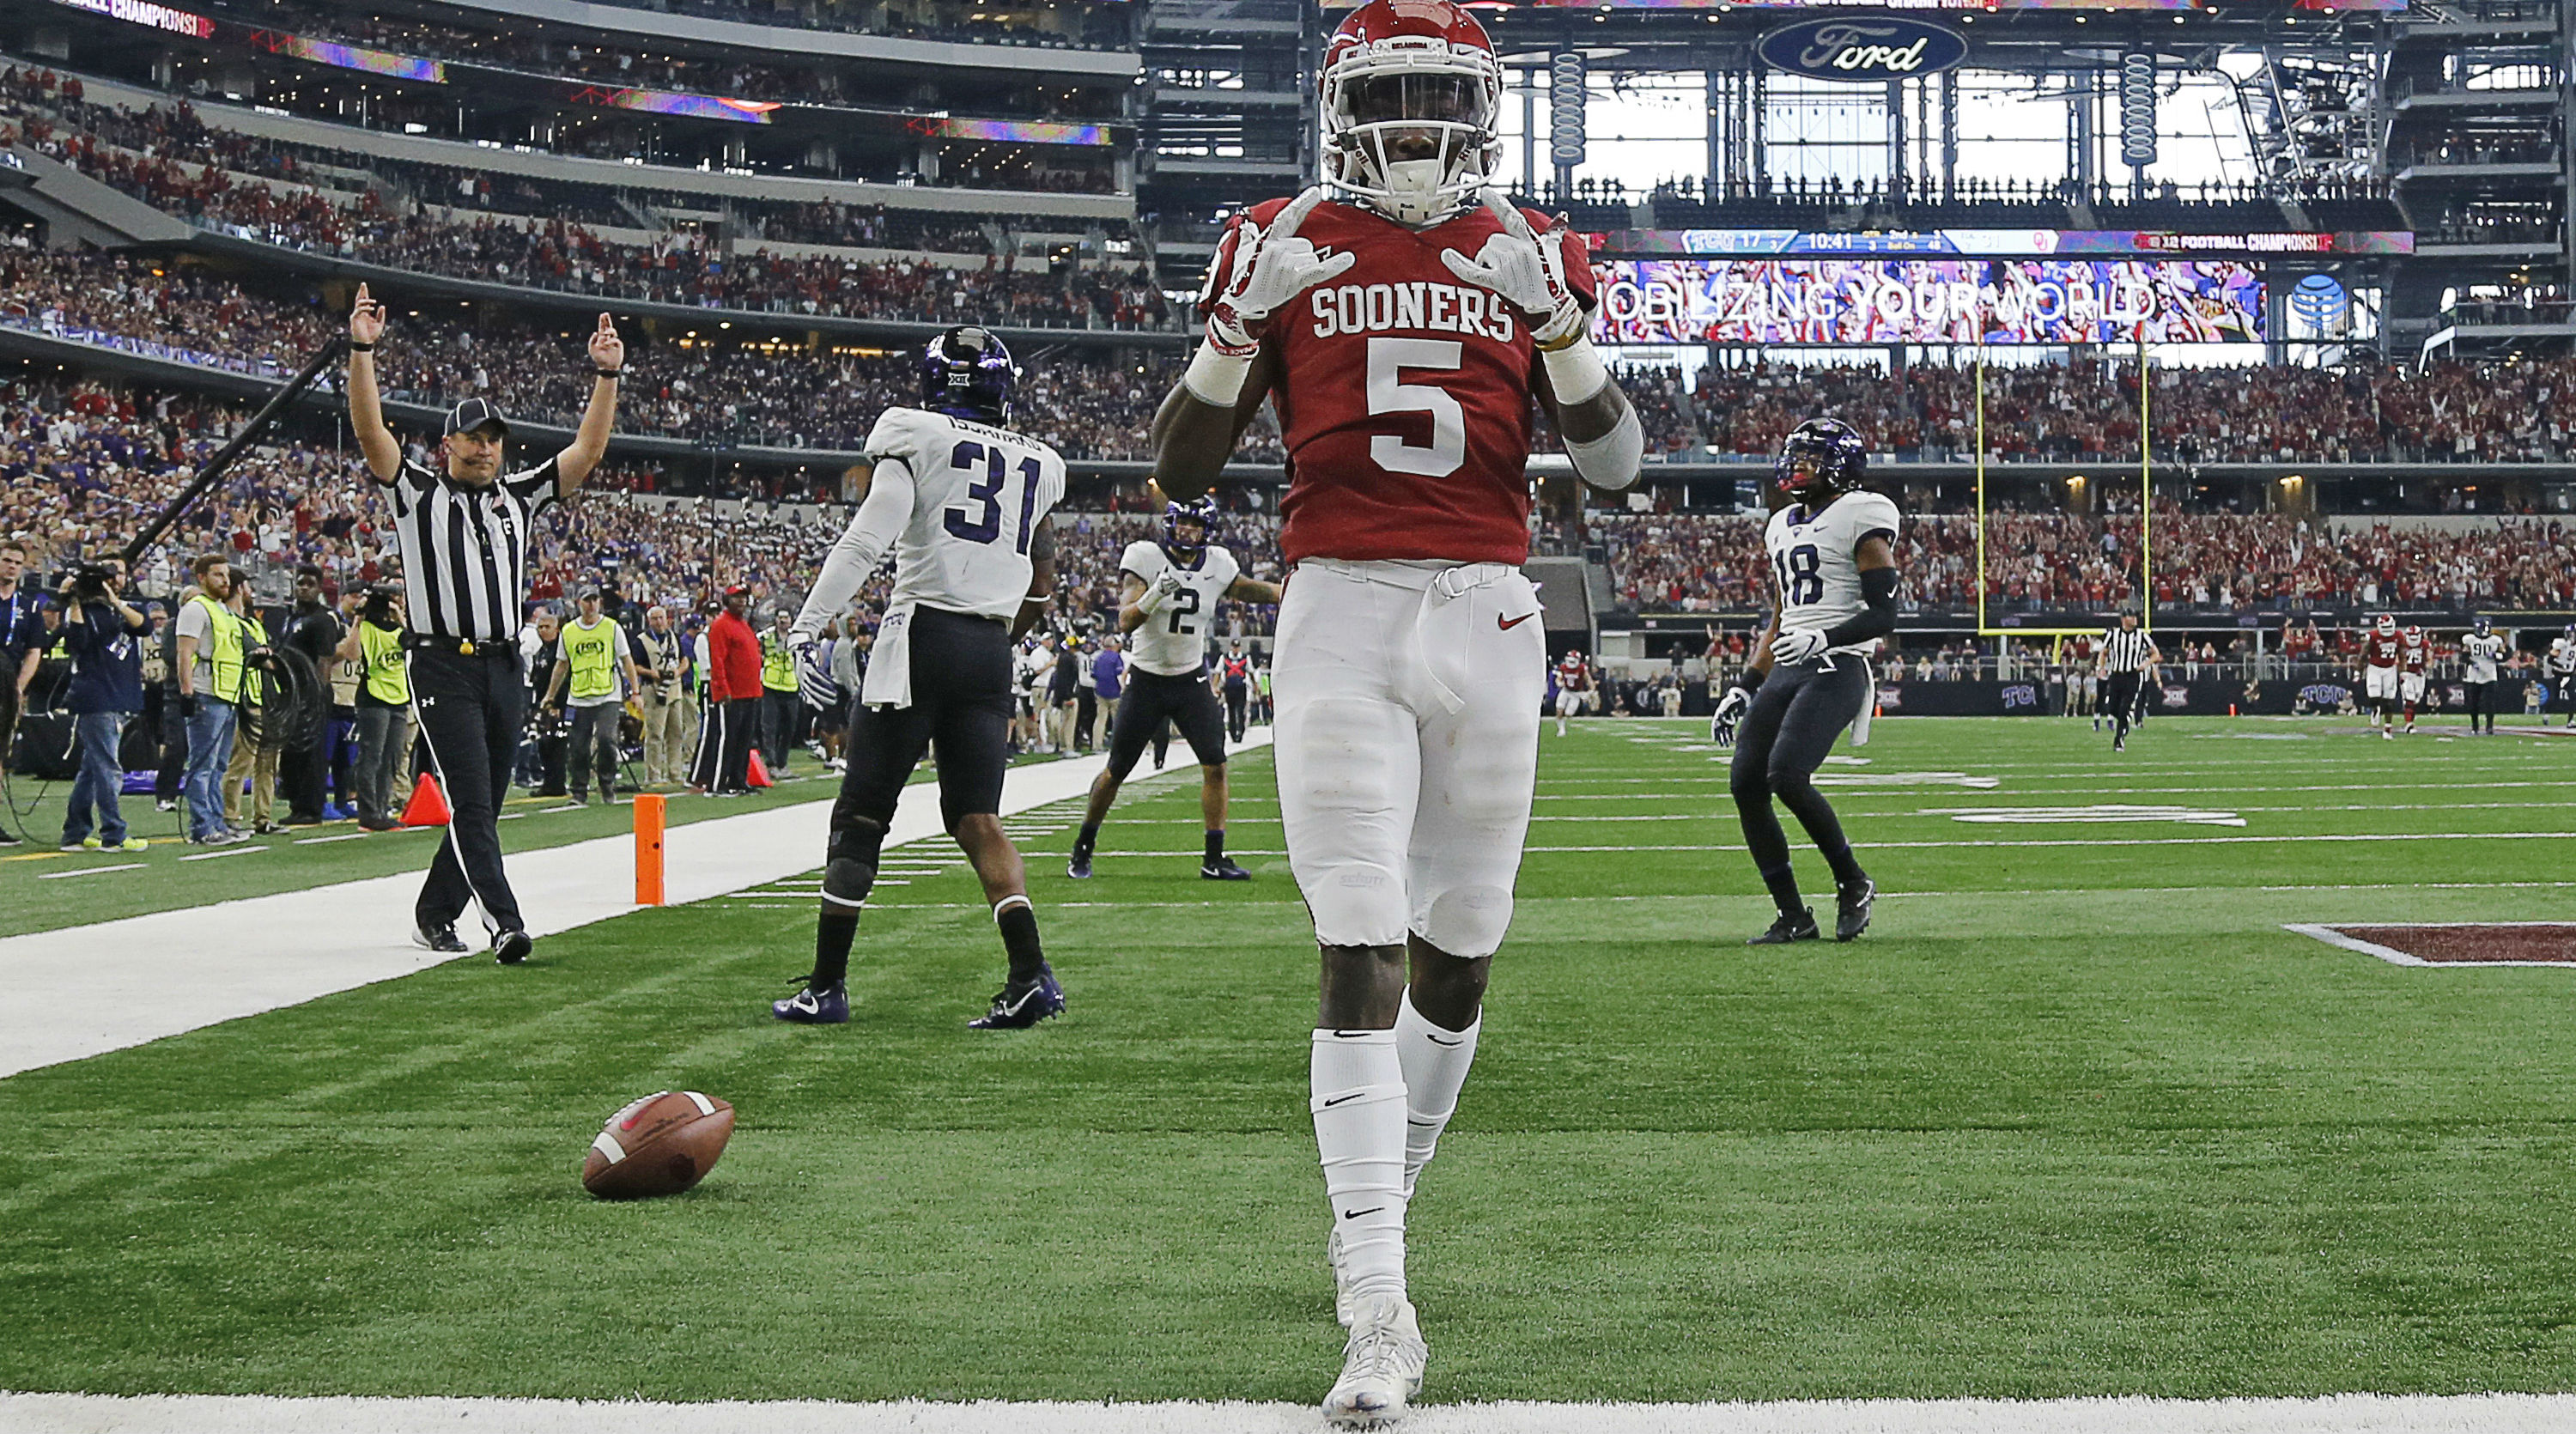 Top 15 Wide Receivers in College Football in 2018